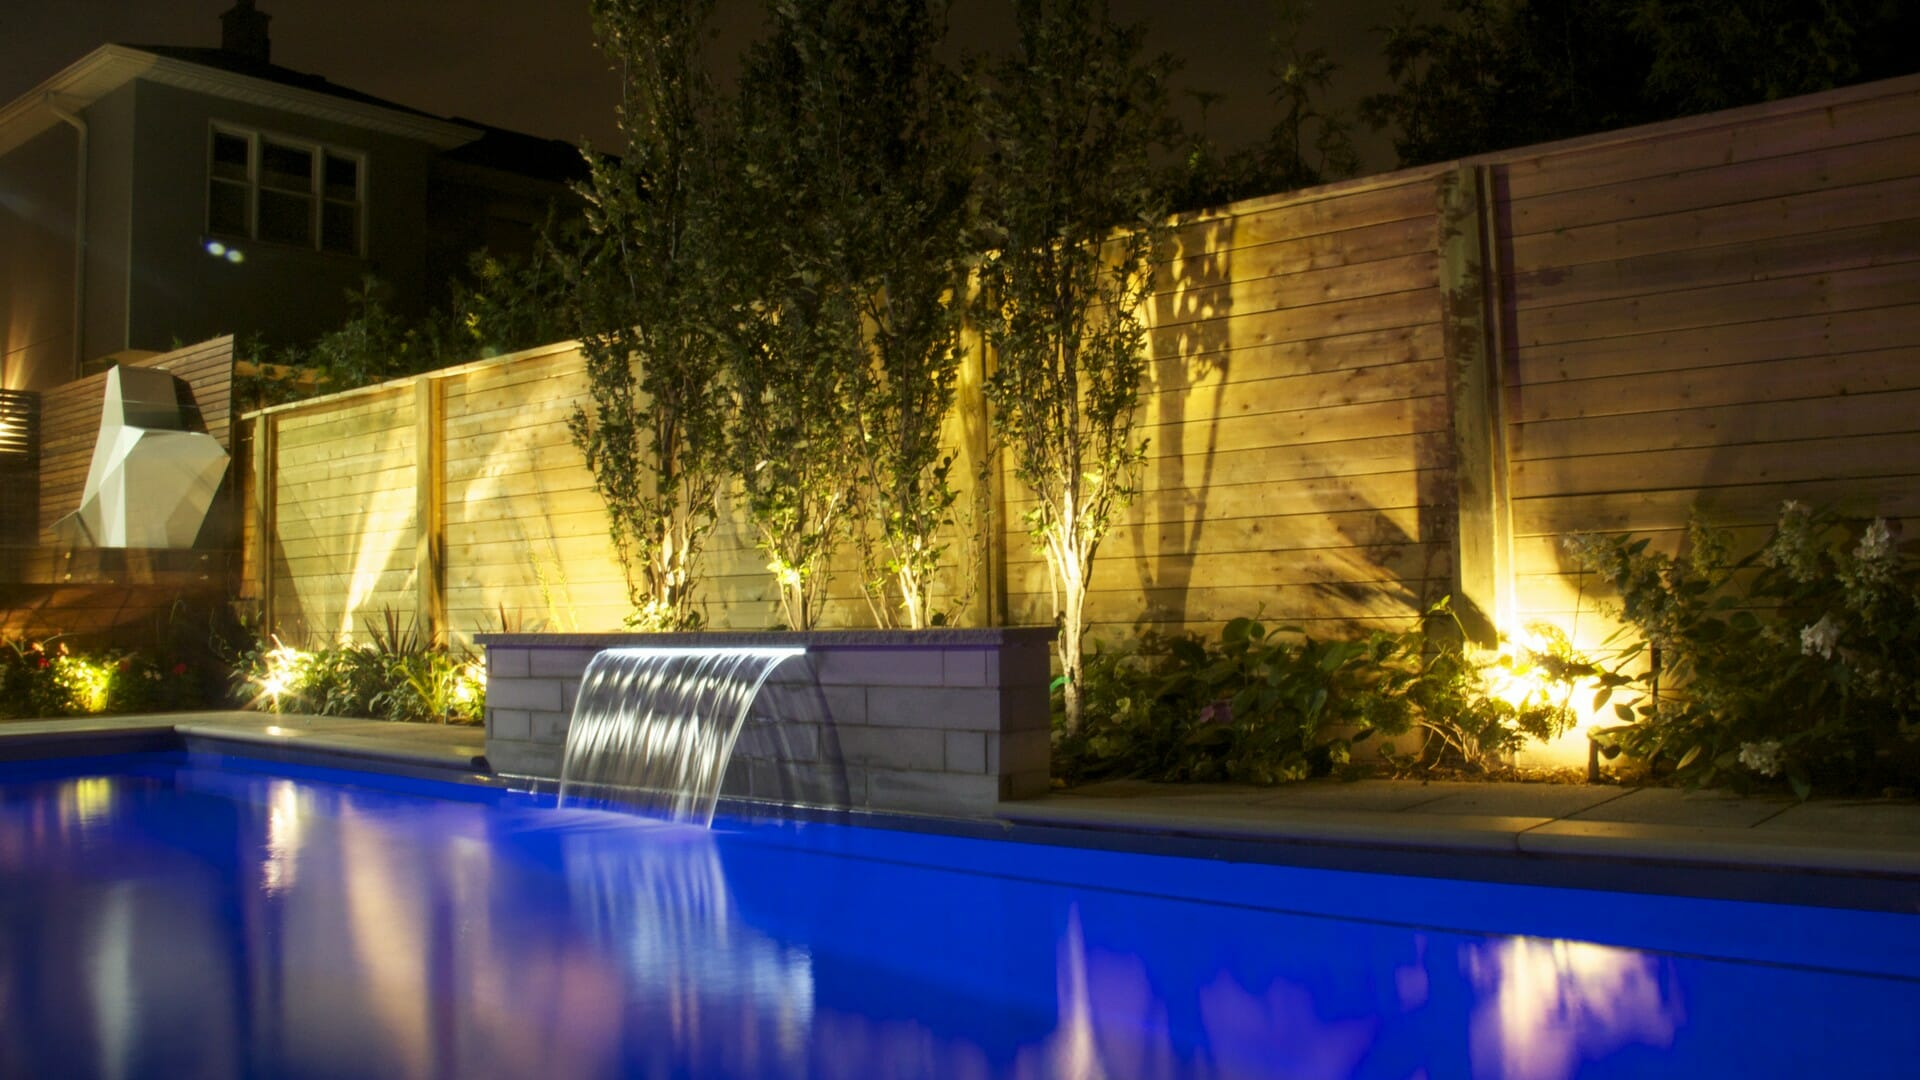 Fiberglass pool, water feature, cedar fence, landscaping, PVC deck, privacy screen, coping stone,